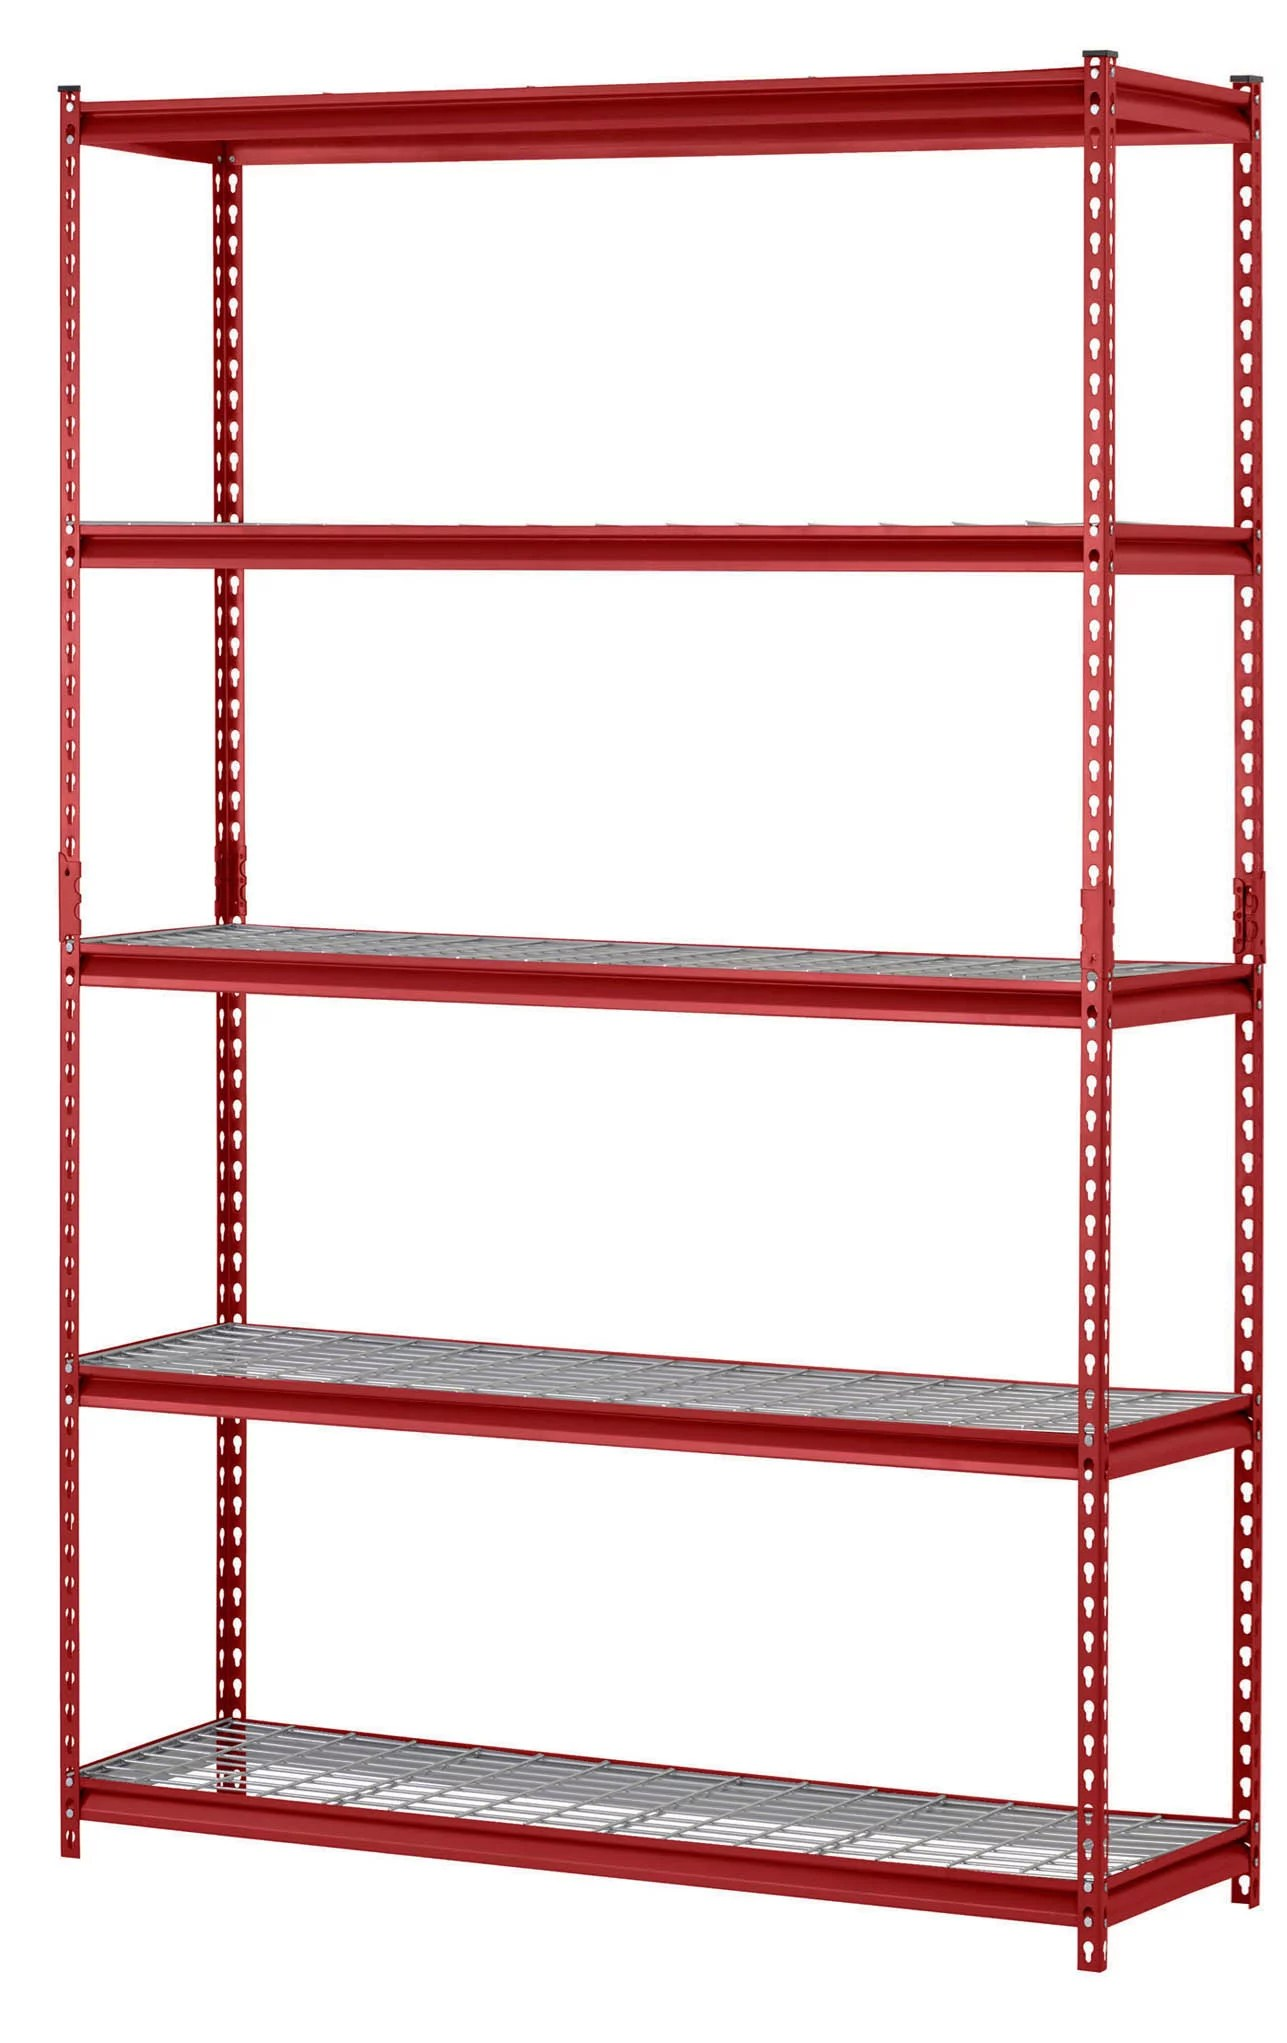 muscle rack red 48 w x 24 d x 72 h 5 shelves steel wire shelving unit